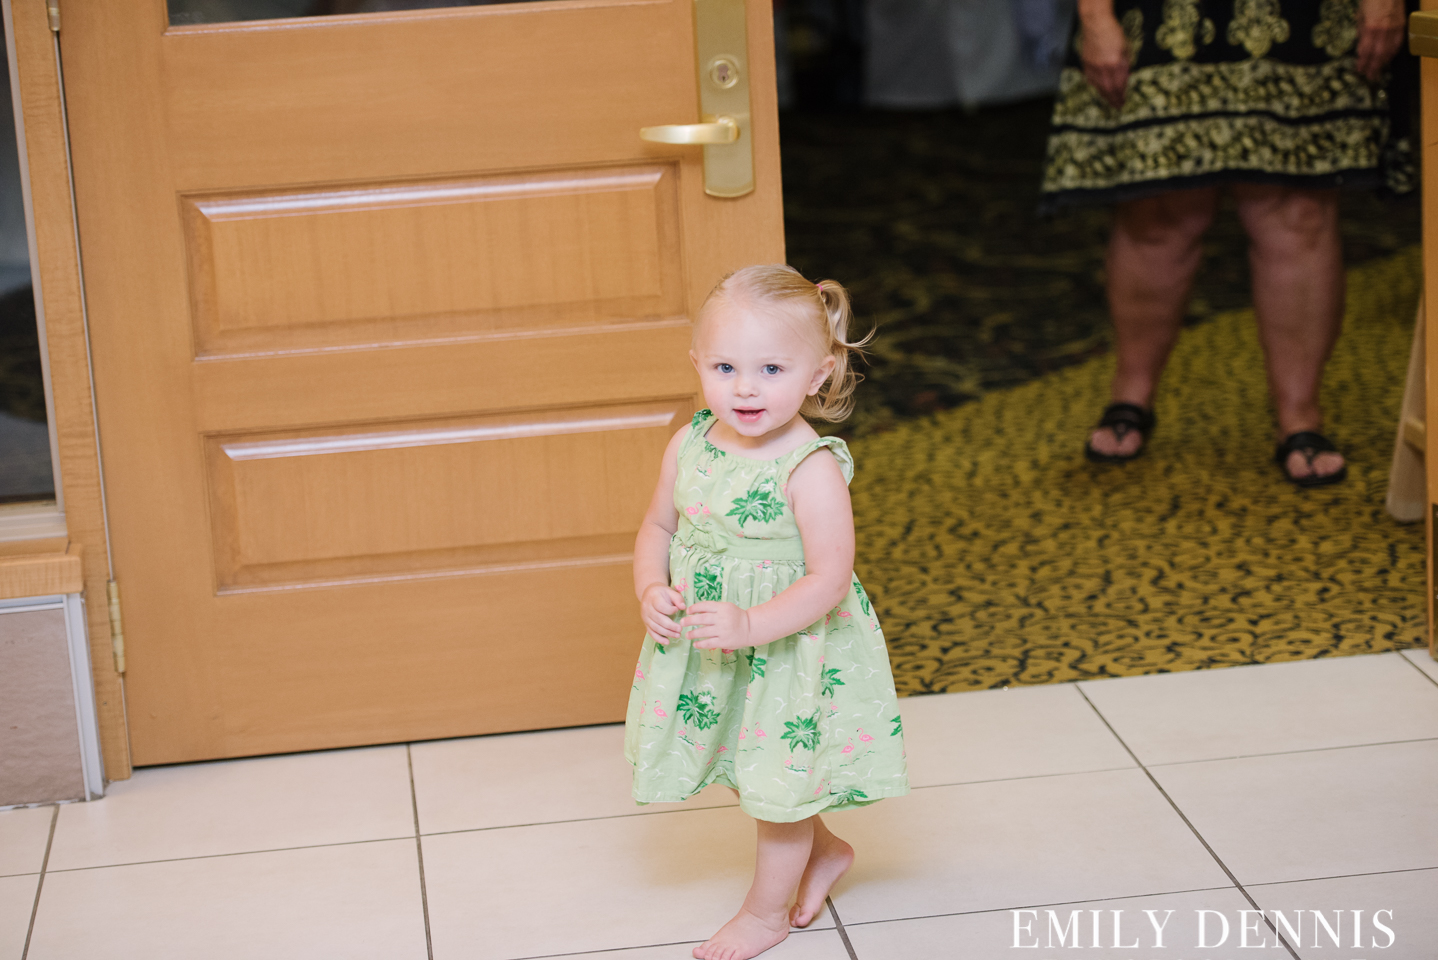 EMILY_DENNIS_PHOTOGRAPHY-89